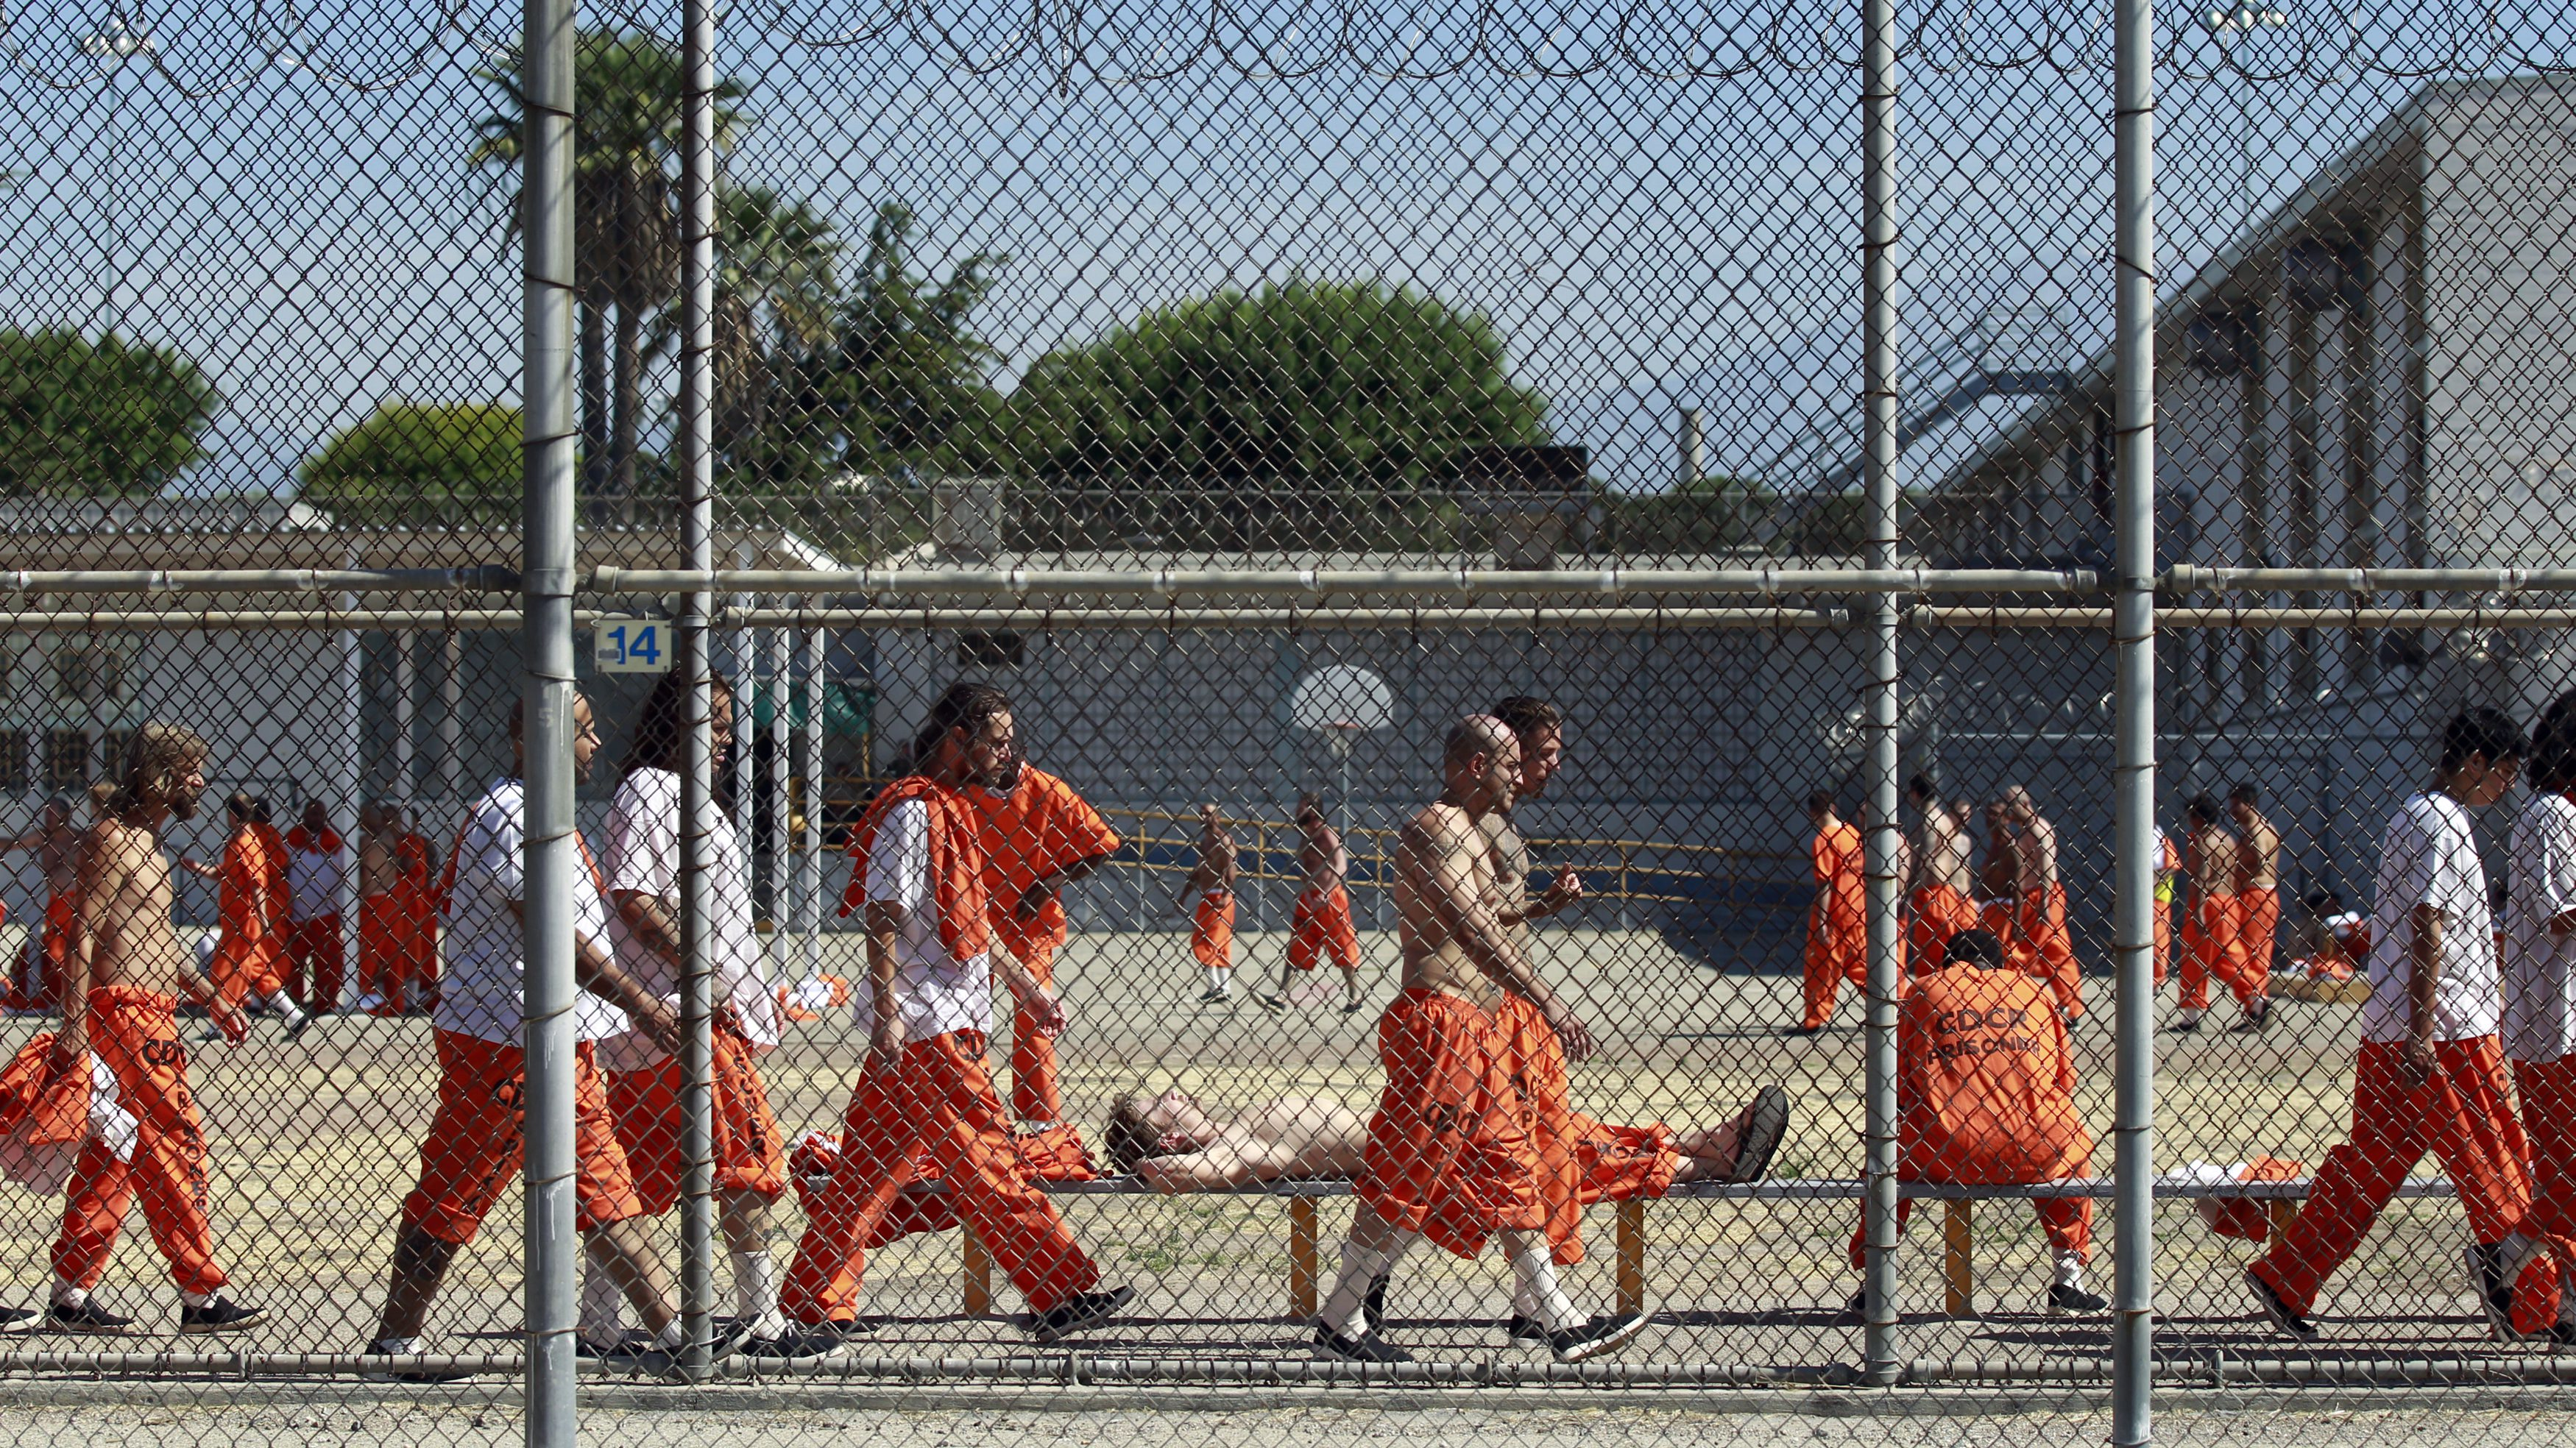 Inmates walk around an exercise yard at the California Institution for Men state prison